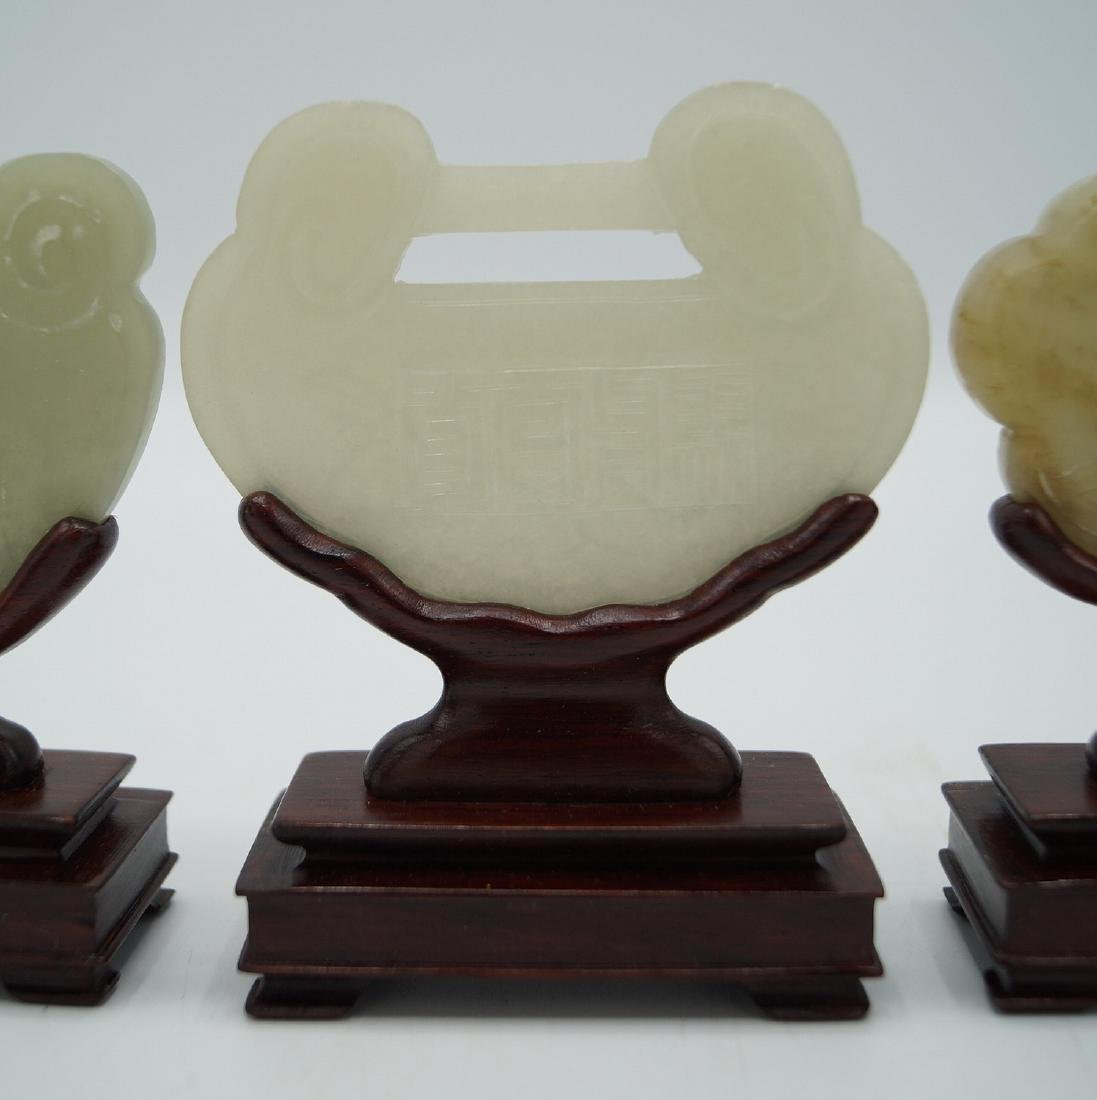 GROUP 3 JADE PLAQUES ON STANDS - 3